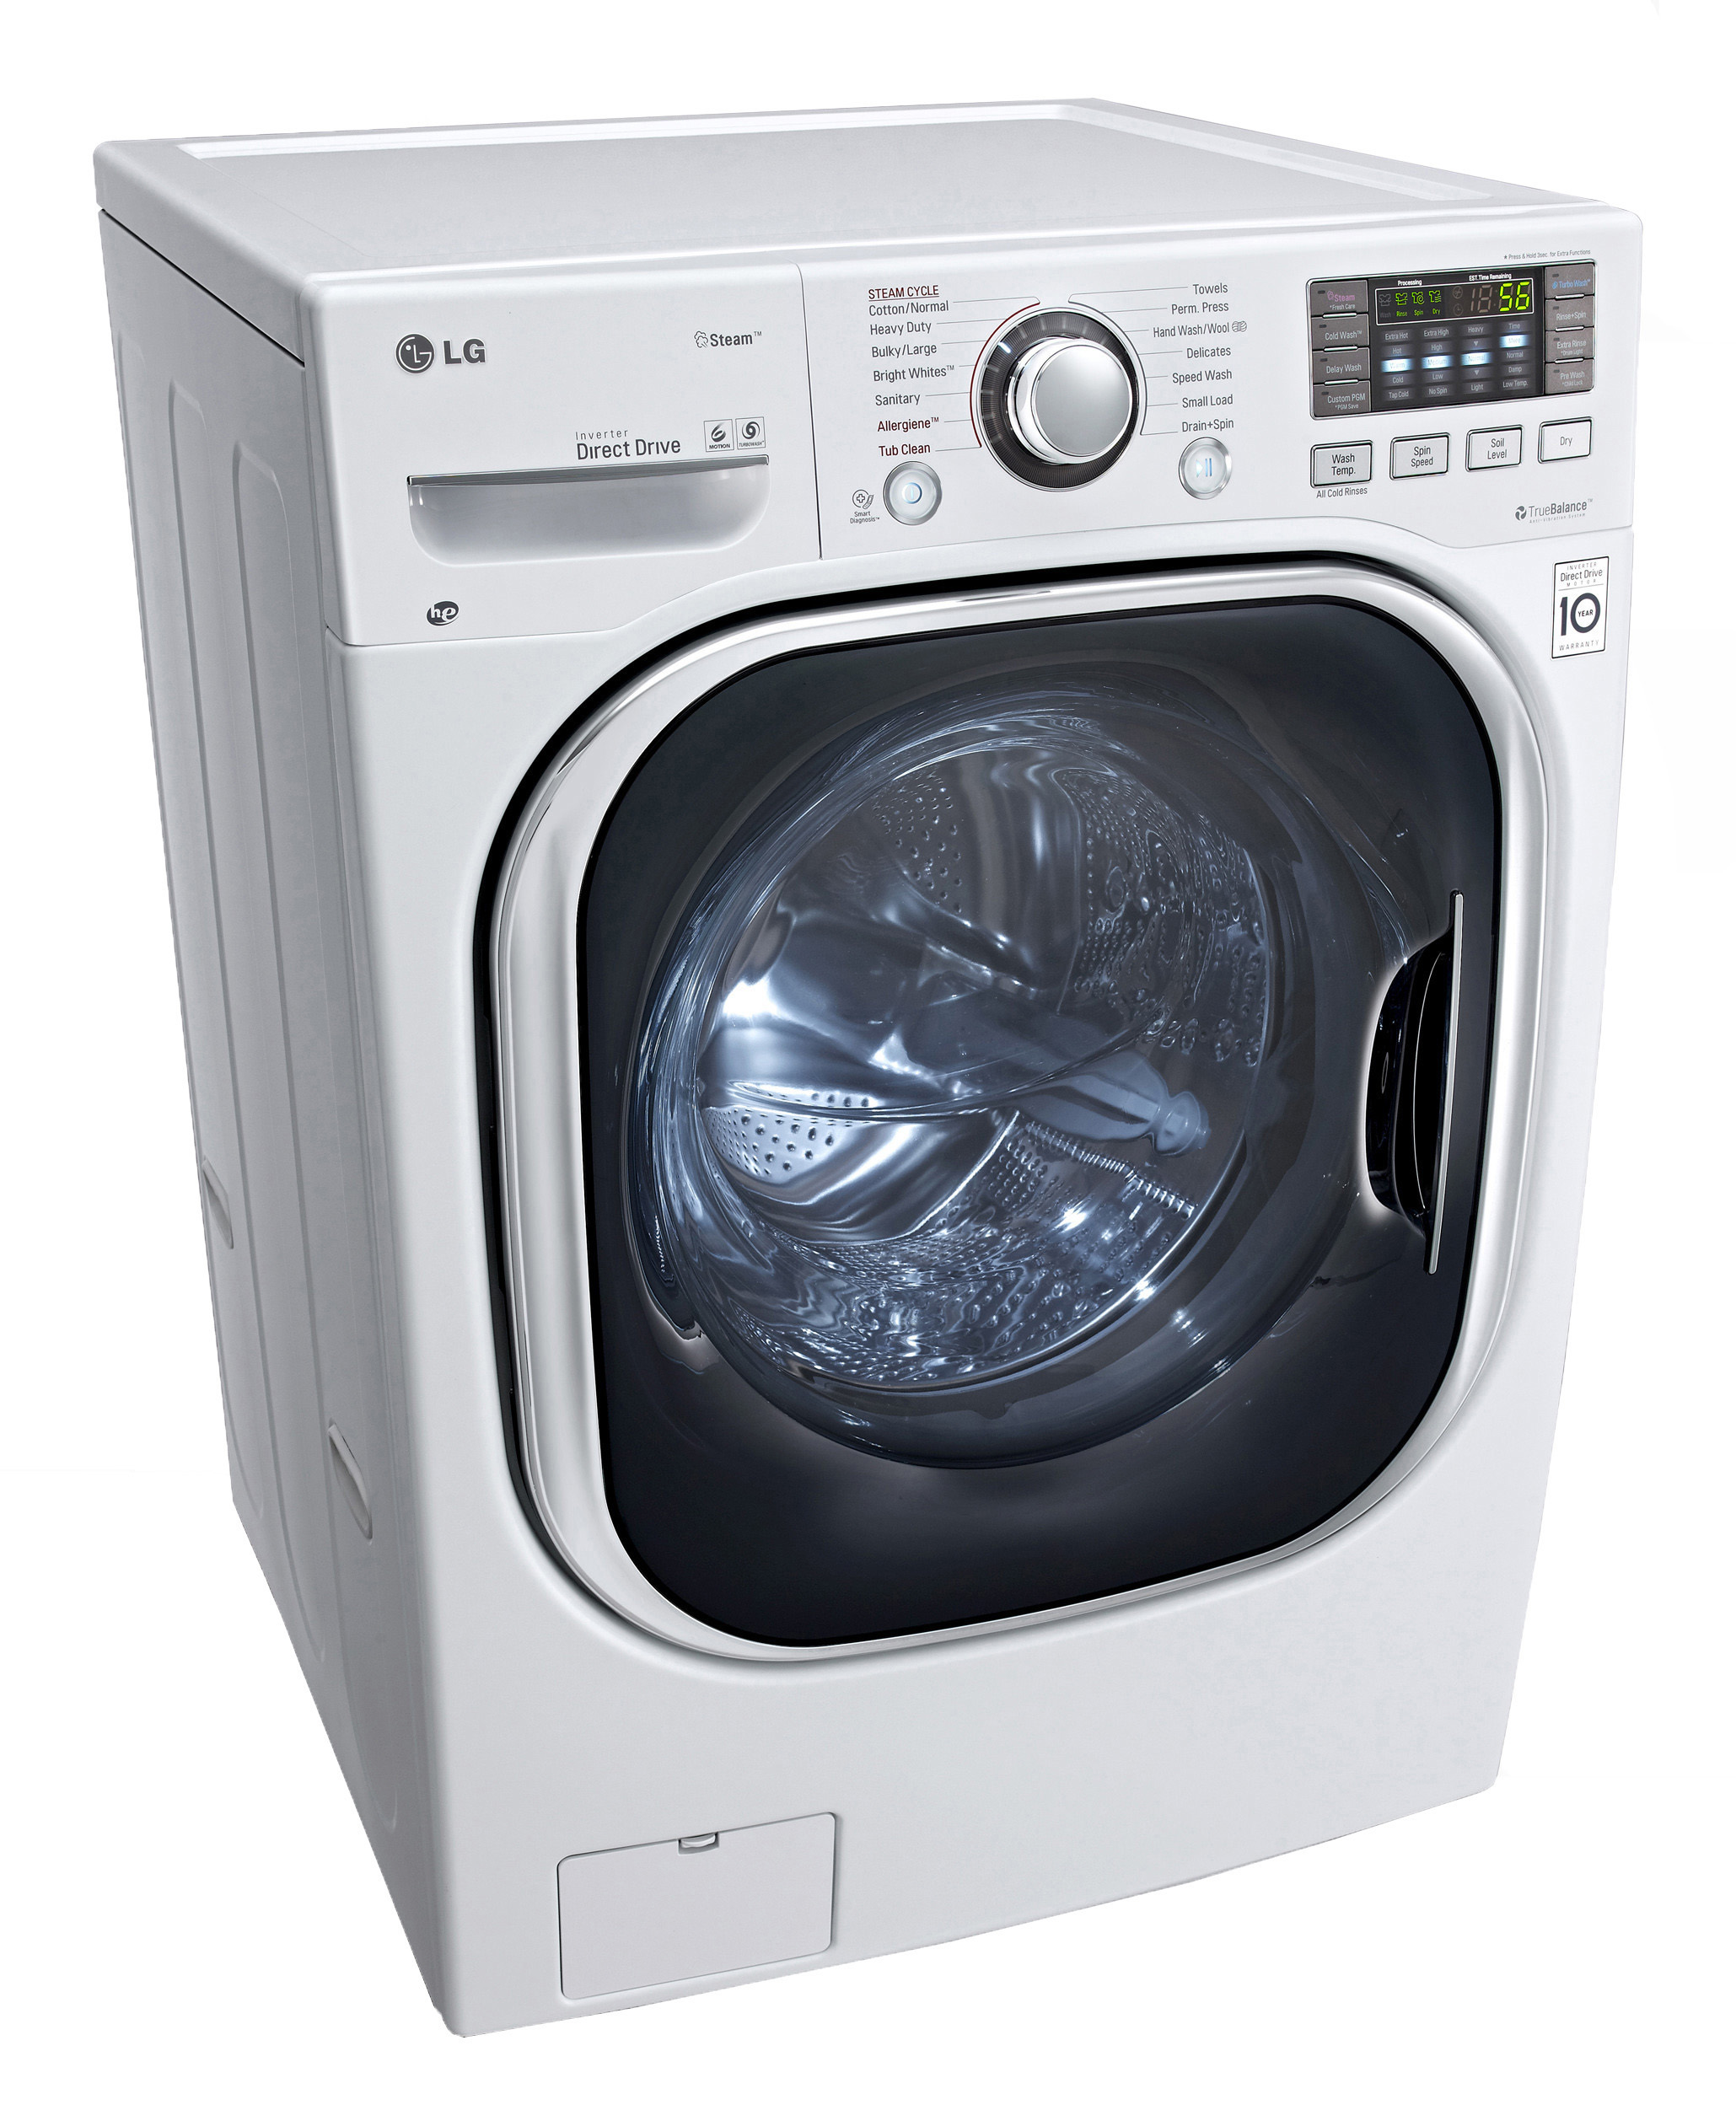 Washer And Dryer In One Part - 30: 732dc060df238f5ef573d70baa6baa7c_214136.  732dc060df238f5ef573d70baa6baa7c_214179.  732dc060df238f5ef573d70baa6baa7c_214180